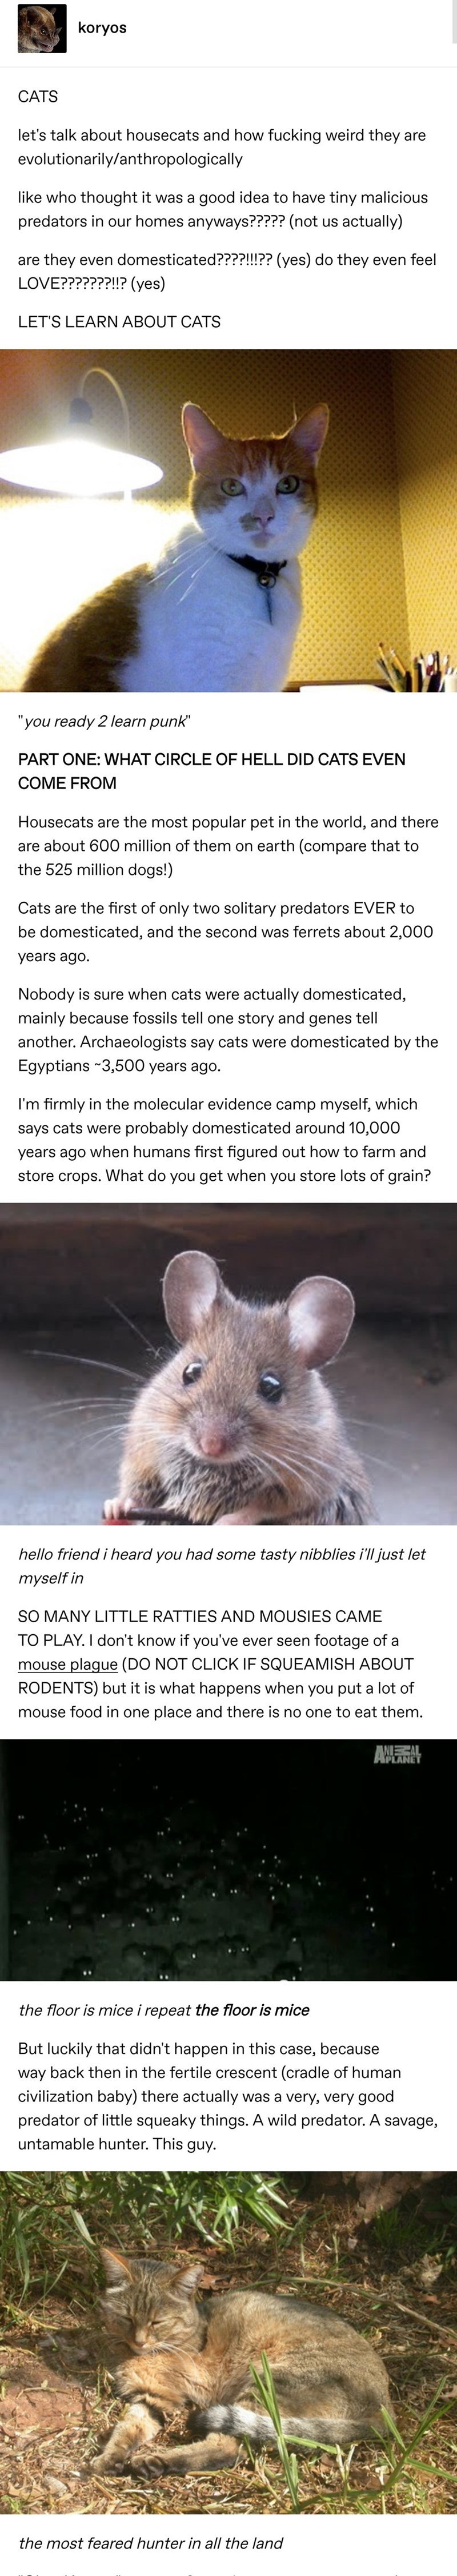 """Mouse - koryos CATS let's talk about housecats and how fucking weird they are evolutionarily/anthropologically like who thought it was a good idea to have tiny malicious predators in our homes anyways????? (not us actually) are they even domesticated????!?? (yes) do they even feel LOVE???????!!? (yes) LET'S LEARN ABOUT CATS """"you ready 2 learn punk"""" PART ONE: WHAT CIRCLE OF HELL DID CATS EVEN COME FROM Housecats are the most popular pet in the world, and there are about 600 million of them on ear"""